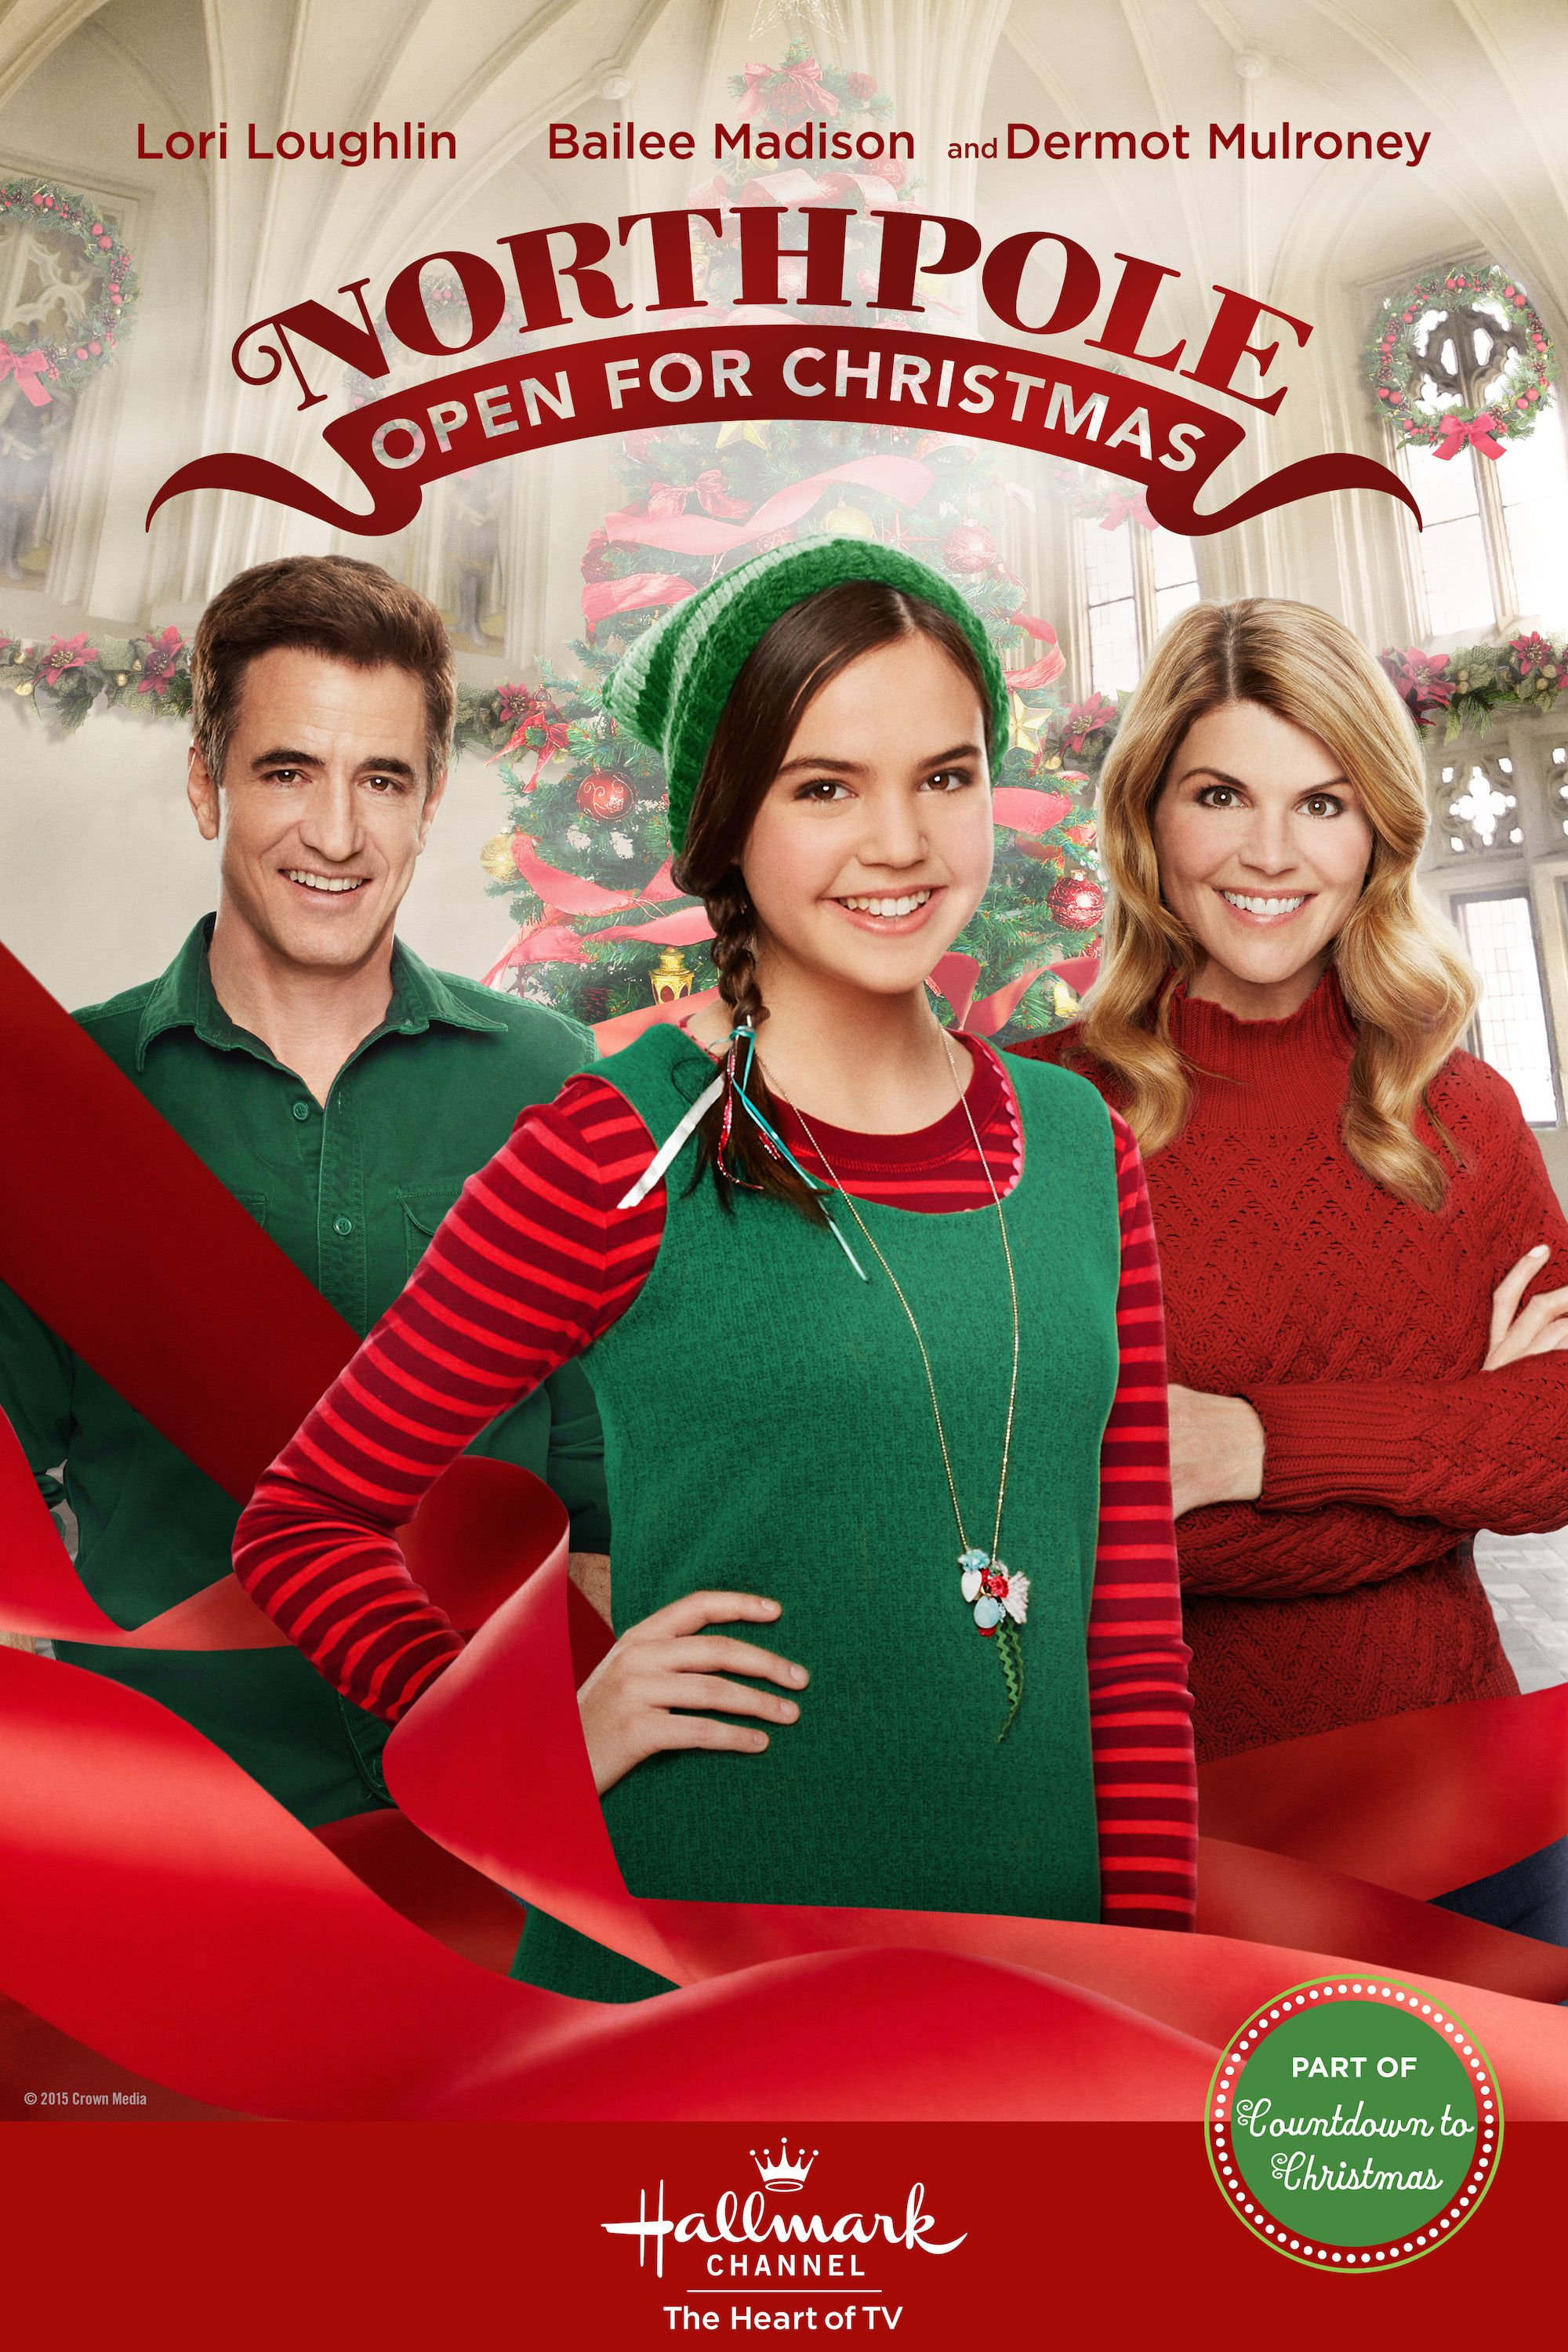 The Best Hallmark Channel Christmas Movies - Countdown to Christmas ...